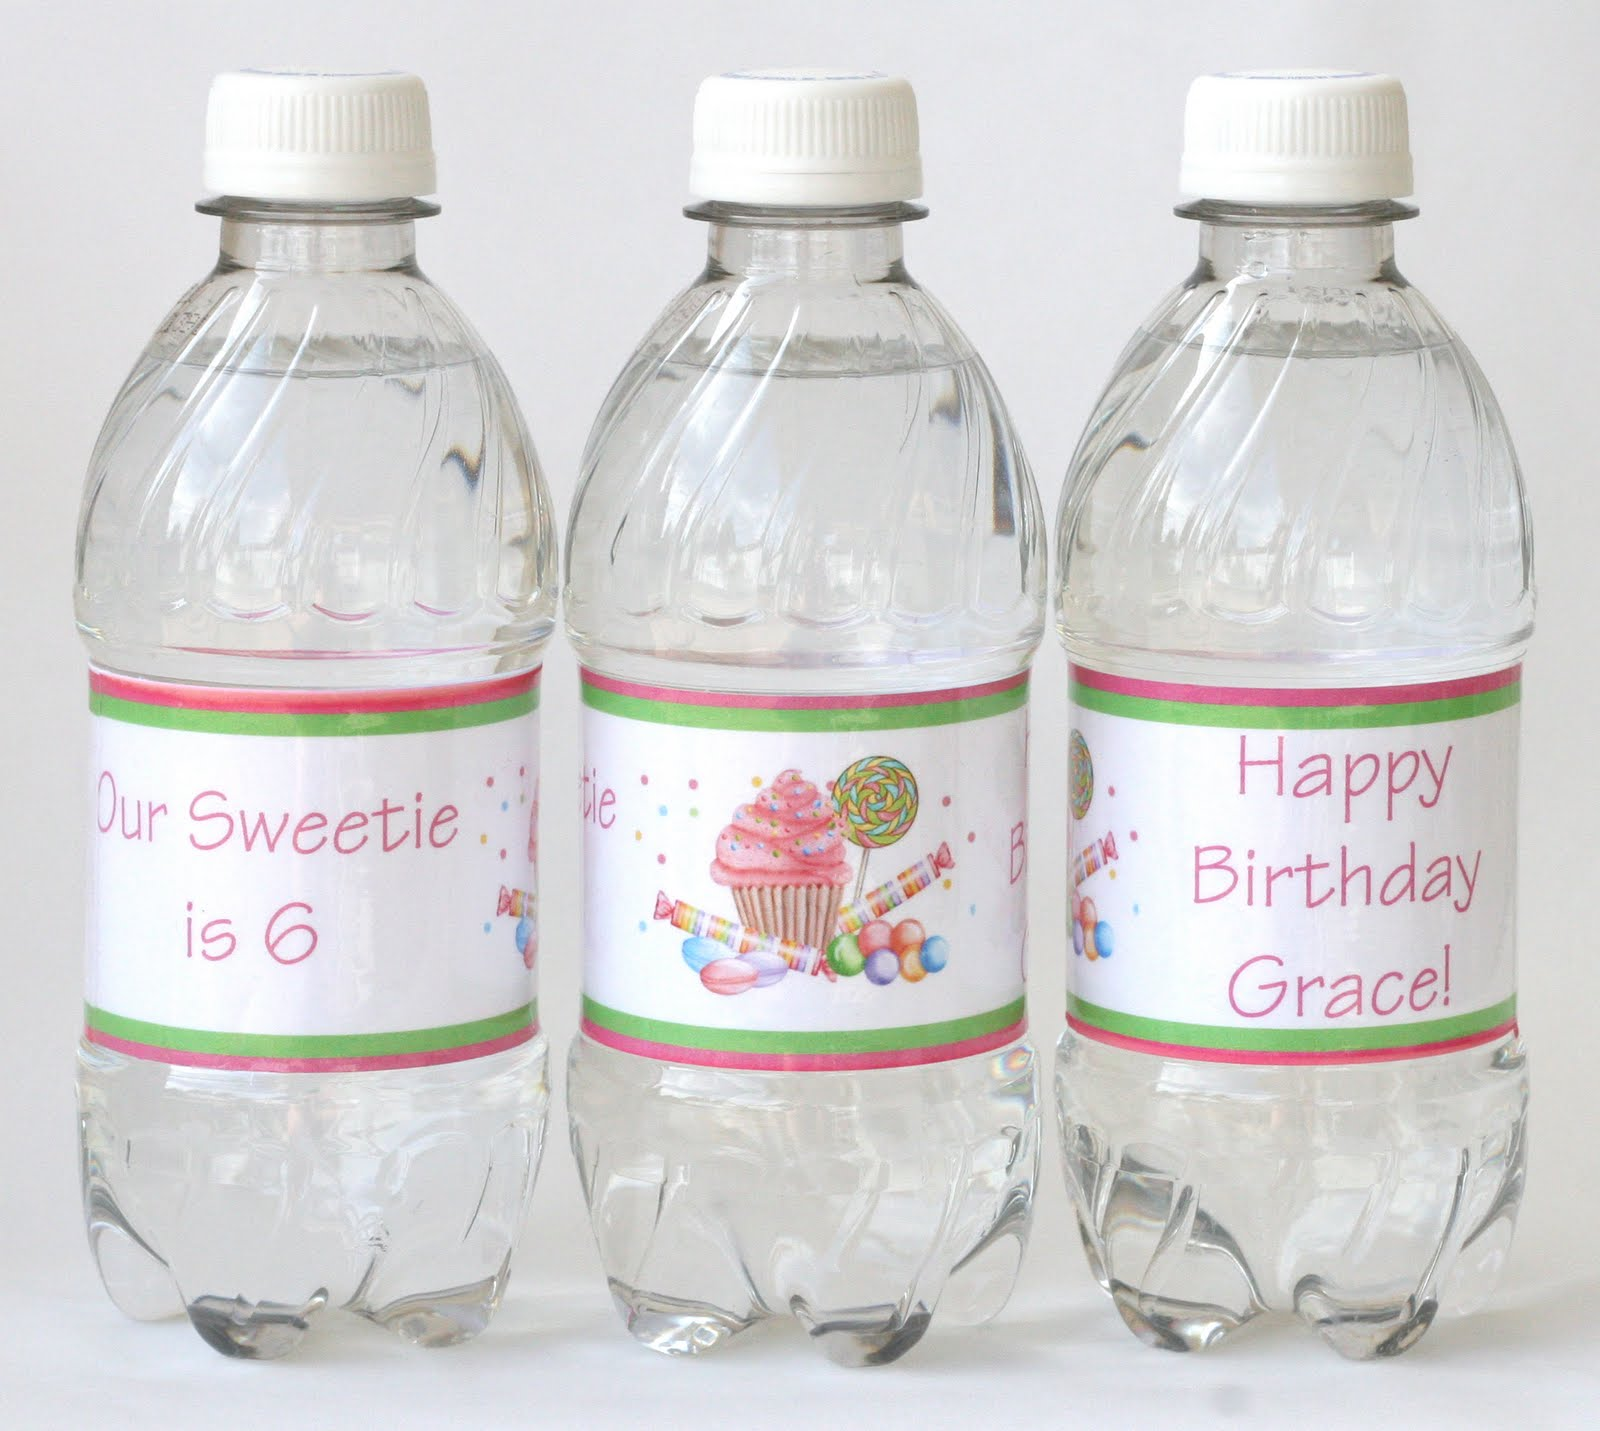 How-to} Make Custom Water Bottle Labels – Glorious Treats